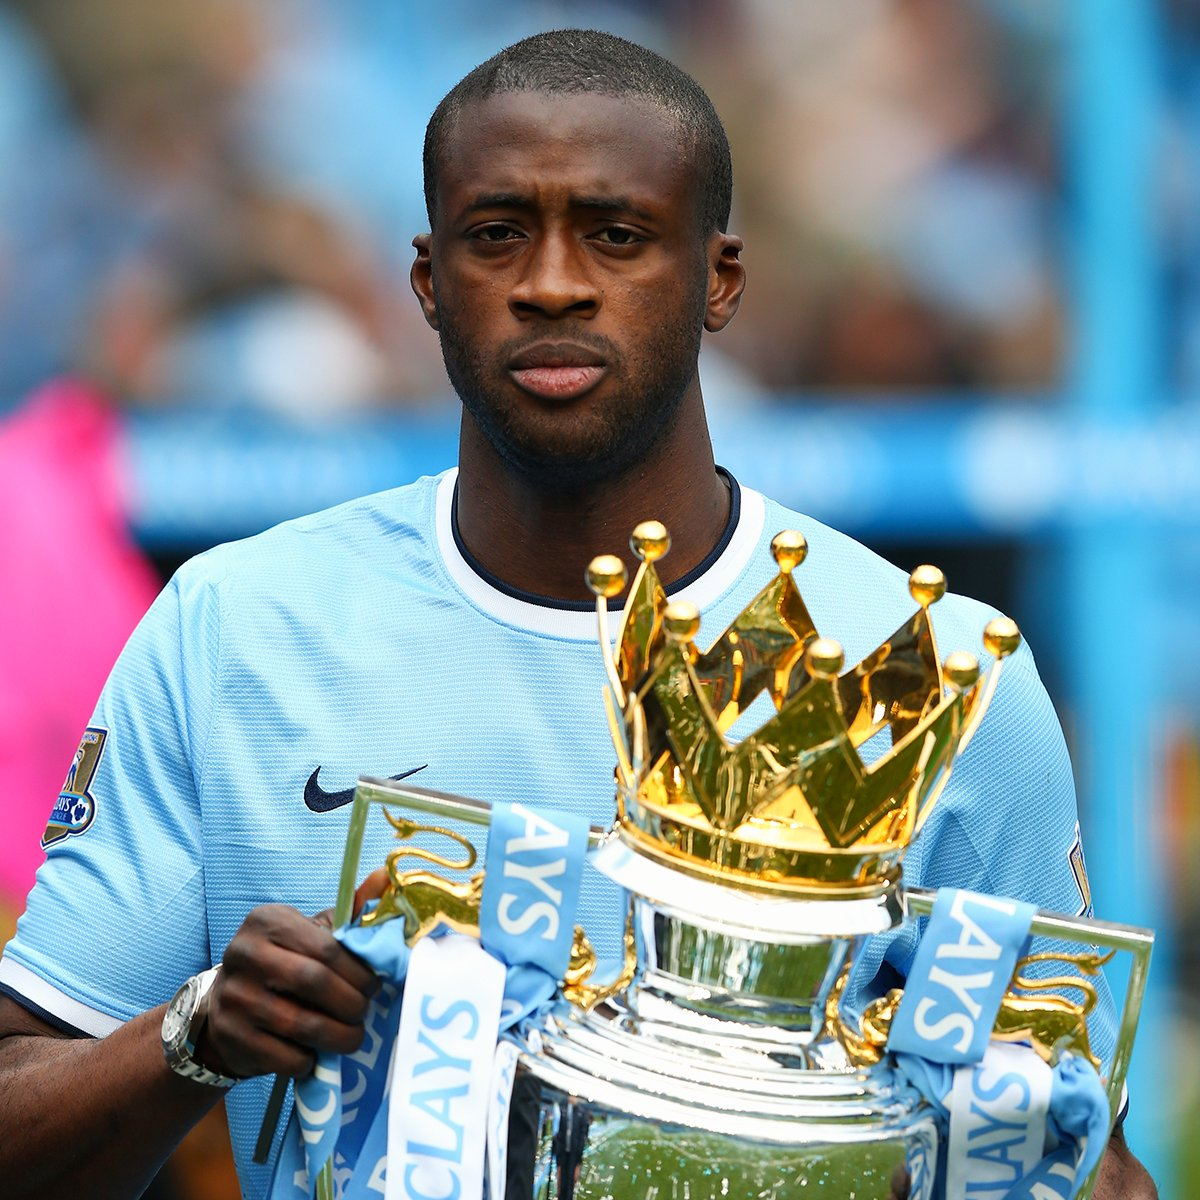 BREAKING: Pep Guardiola confirms Yaya Toure will leave the club at the end of the season https://t.co/KSDyNMaGEd